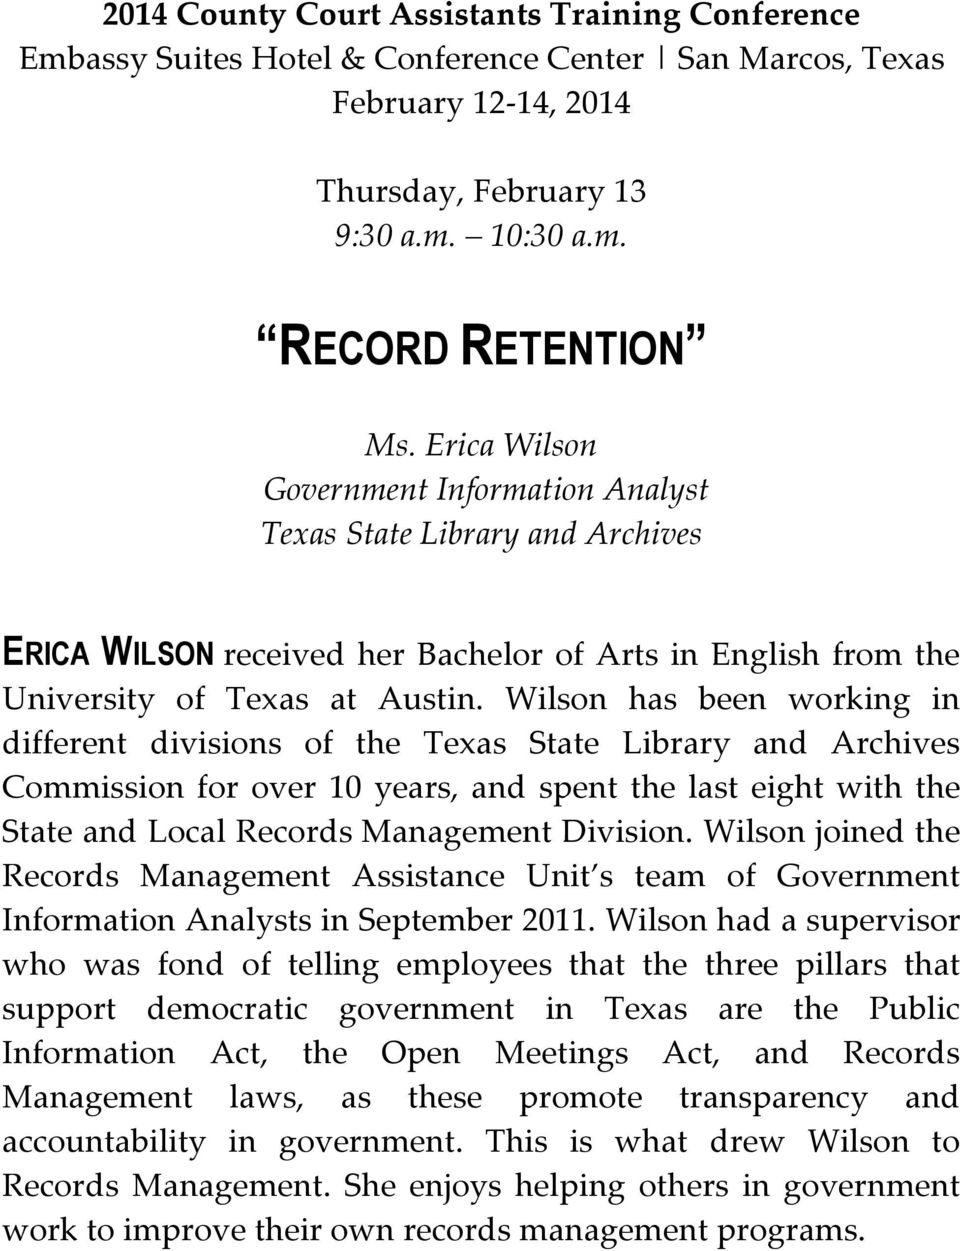 Wilson has been working in different divisions of the Texas State Library and Archives Commission for over 10 years, and spent the last eight with the State and Local Records Management Division.